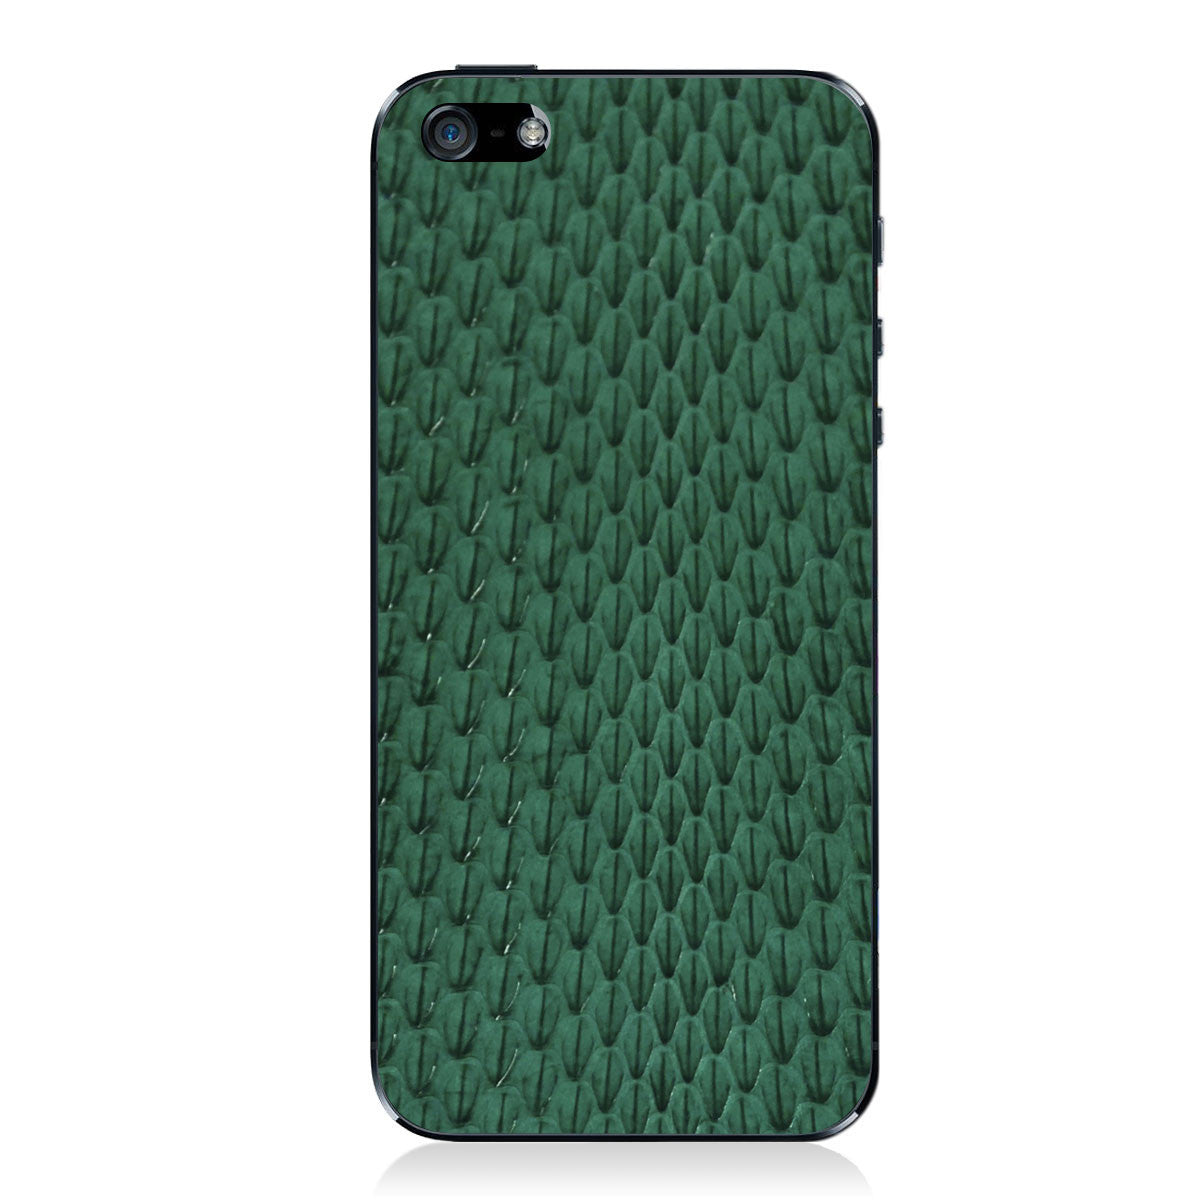 Evergreen Whip Snake iPhone 5 - 5S - SE Leather Skin